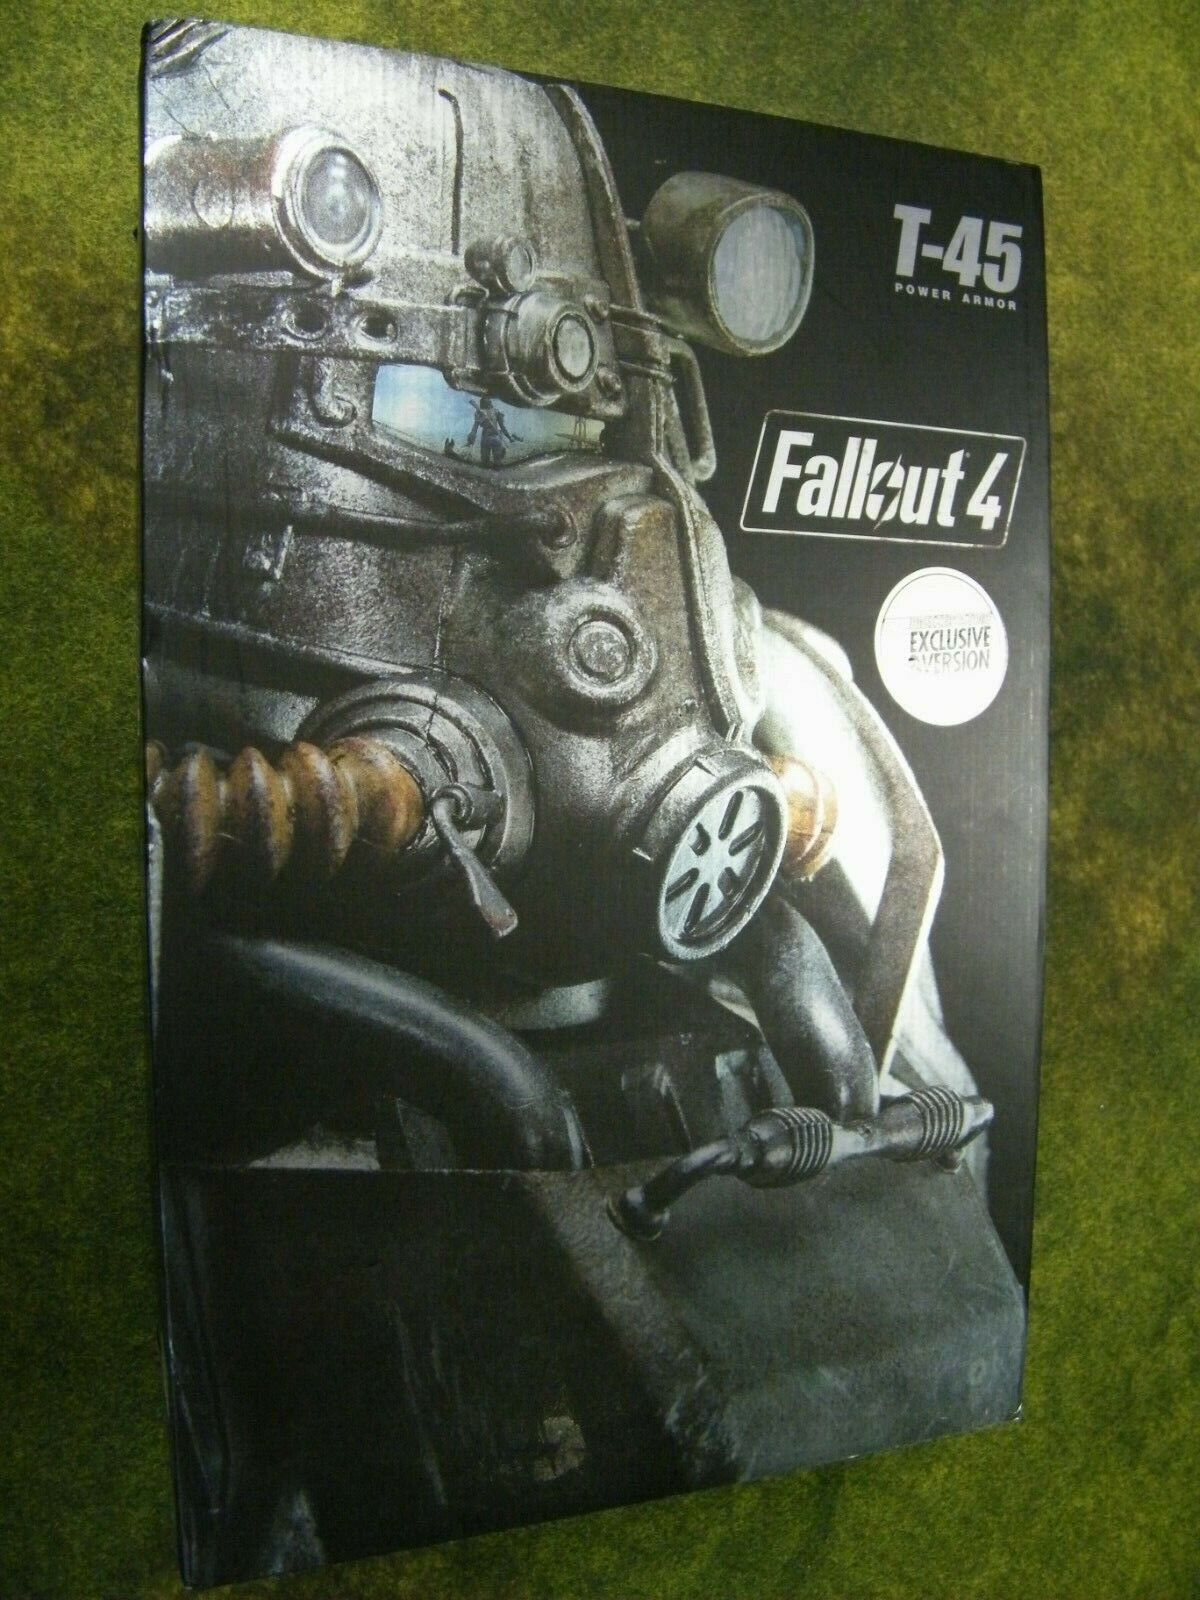 Fallout 4 T-45 Power Armor EXCLUSIVE with Chain Mini Gun